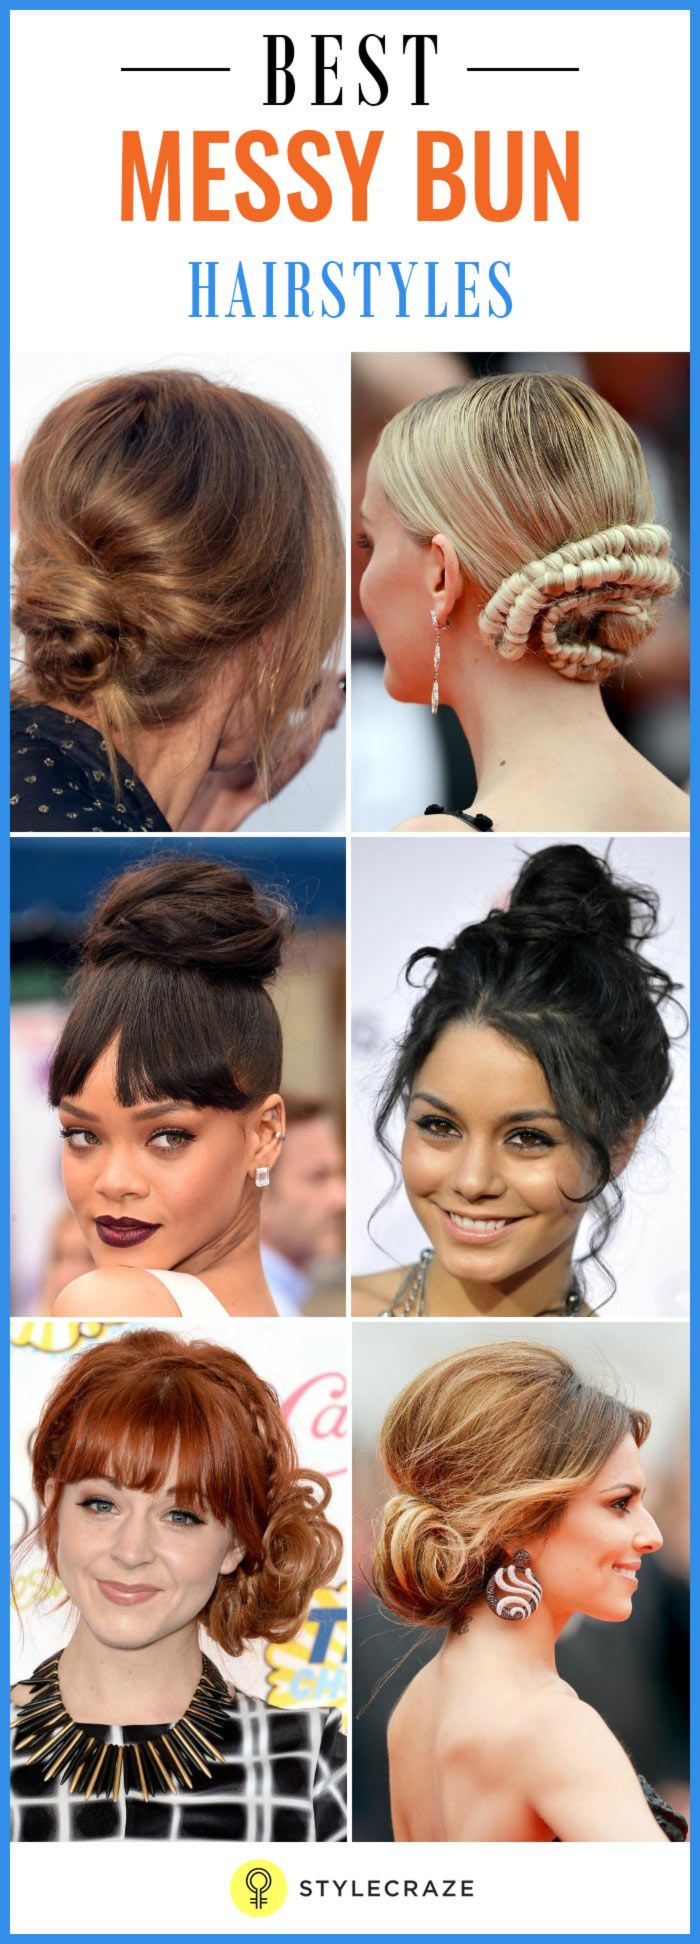 best 25+ bun hairstyle ideas on pinterest | 2 buns hairstyle, diy